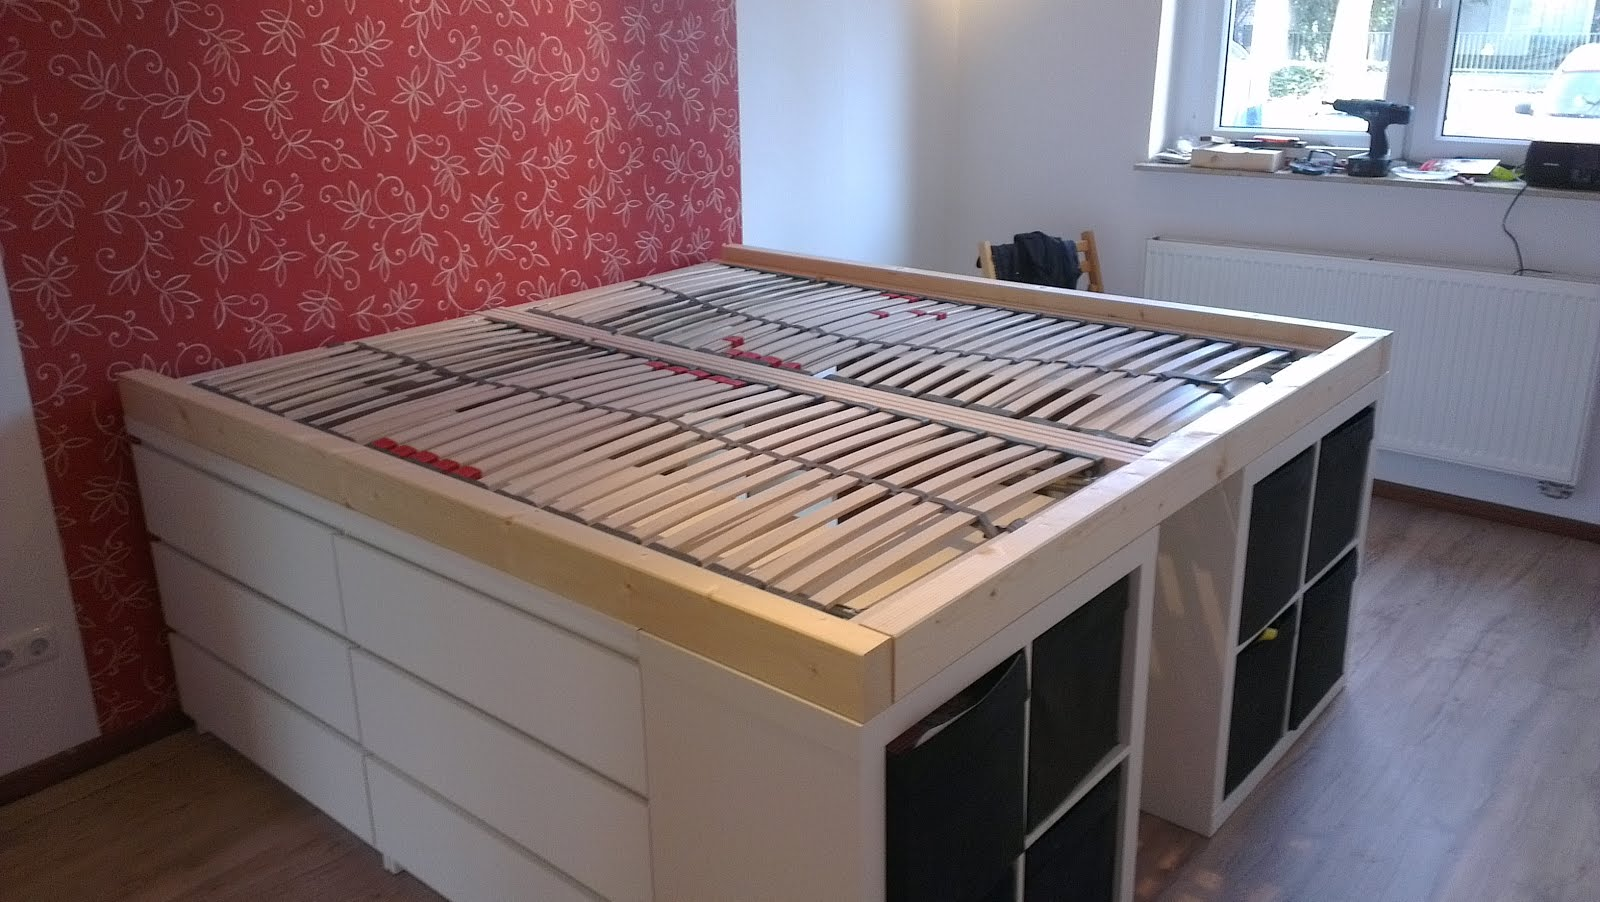 Half a loft bed get home decorating for Platform bed with drawers ikea